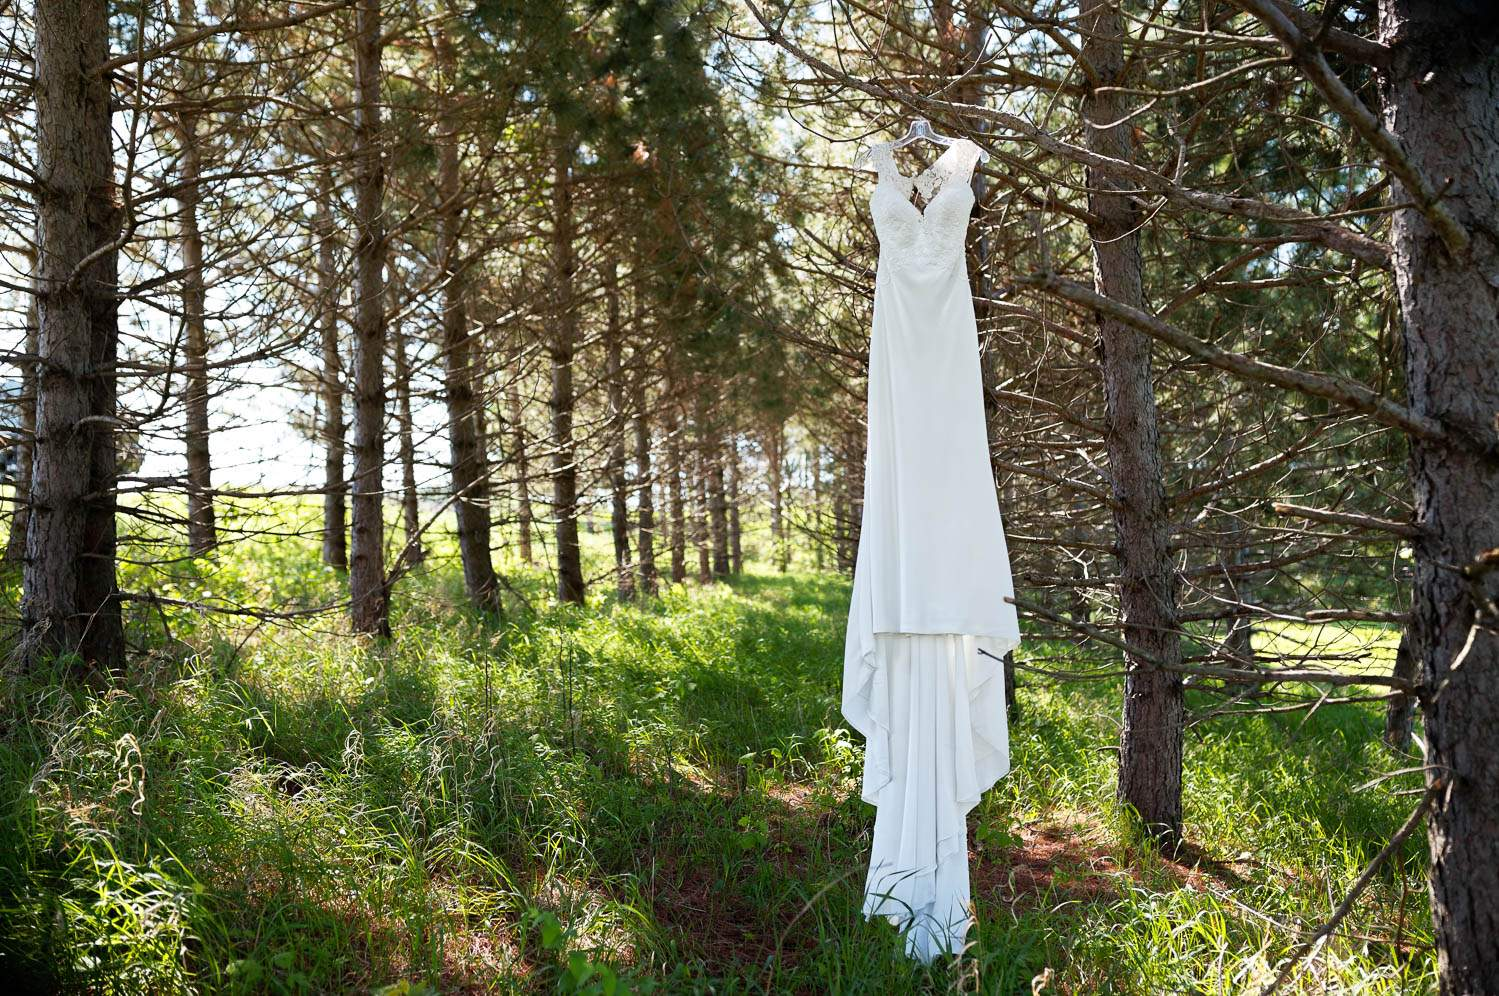 — white bride's dress in pine tree —